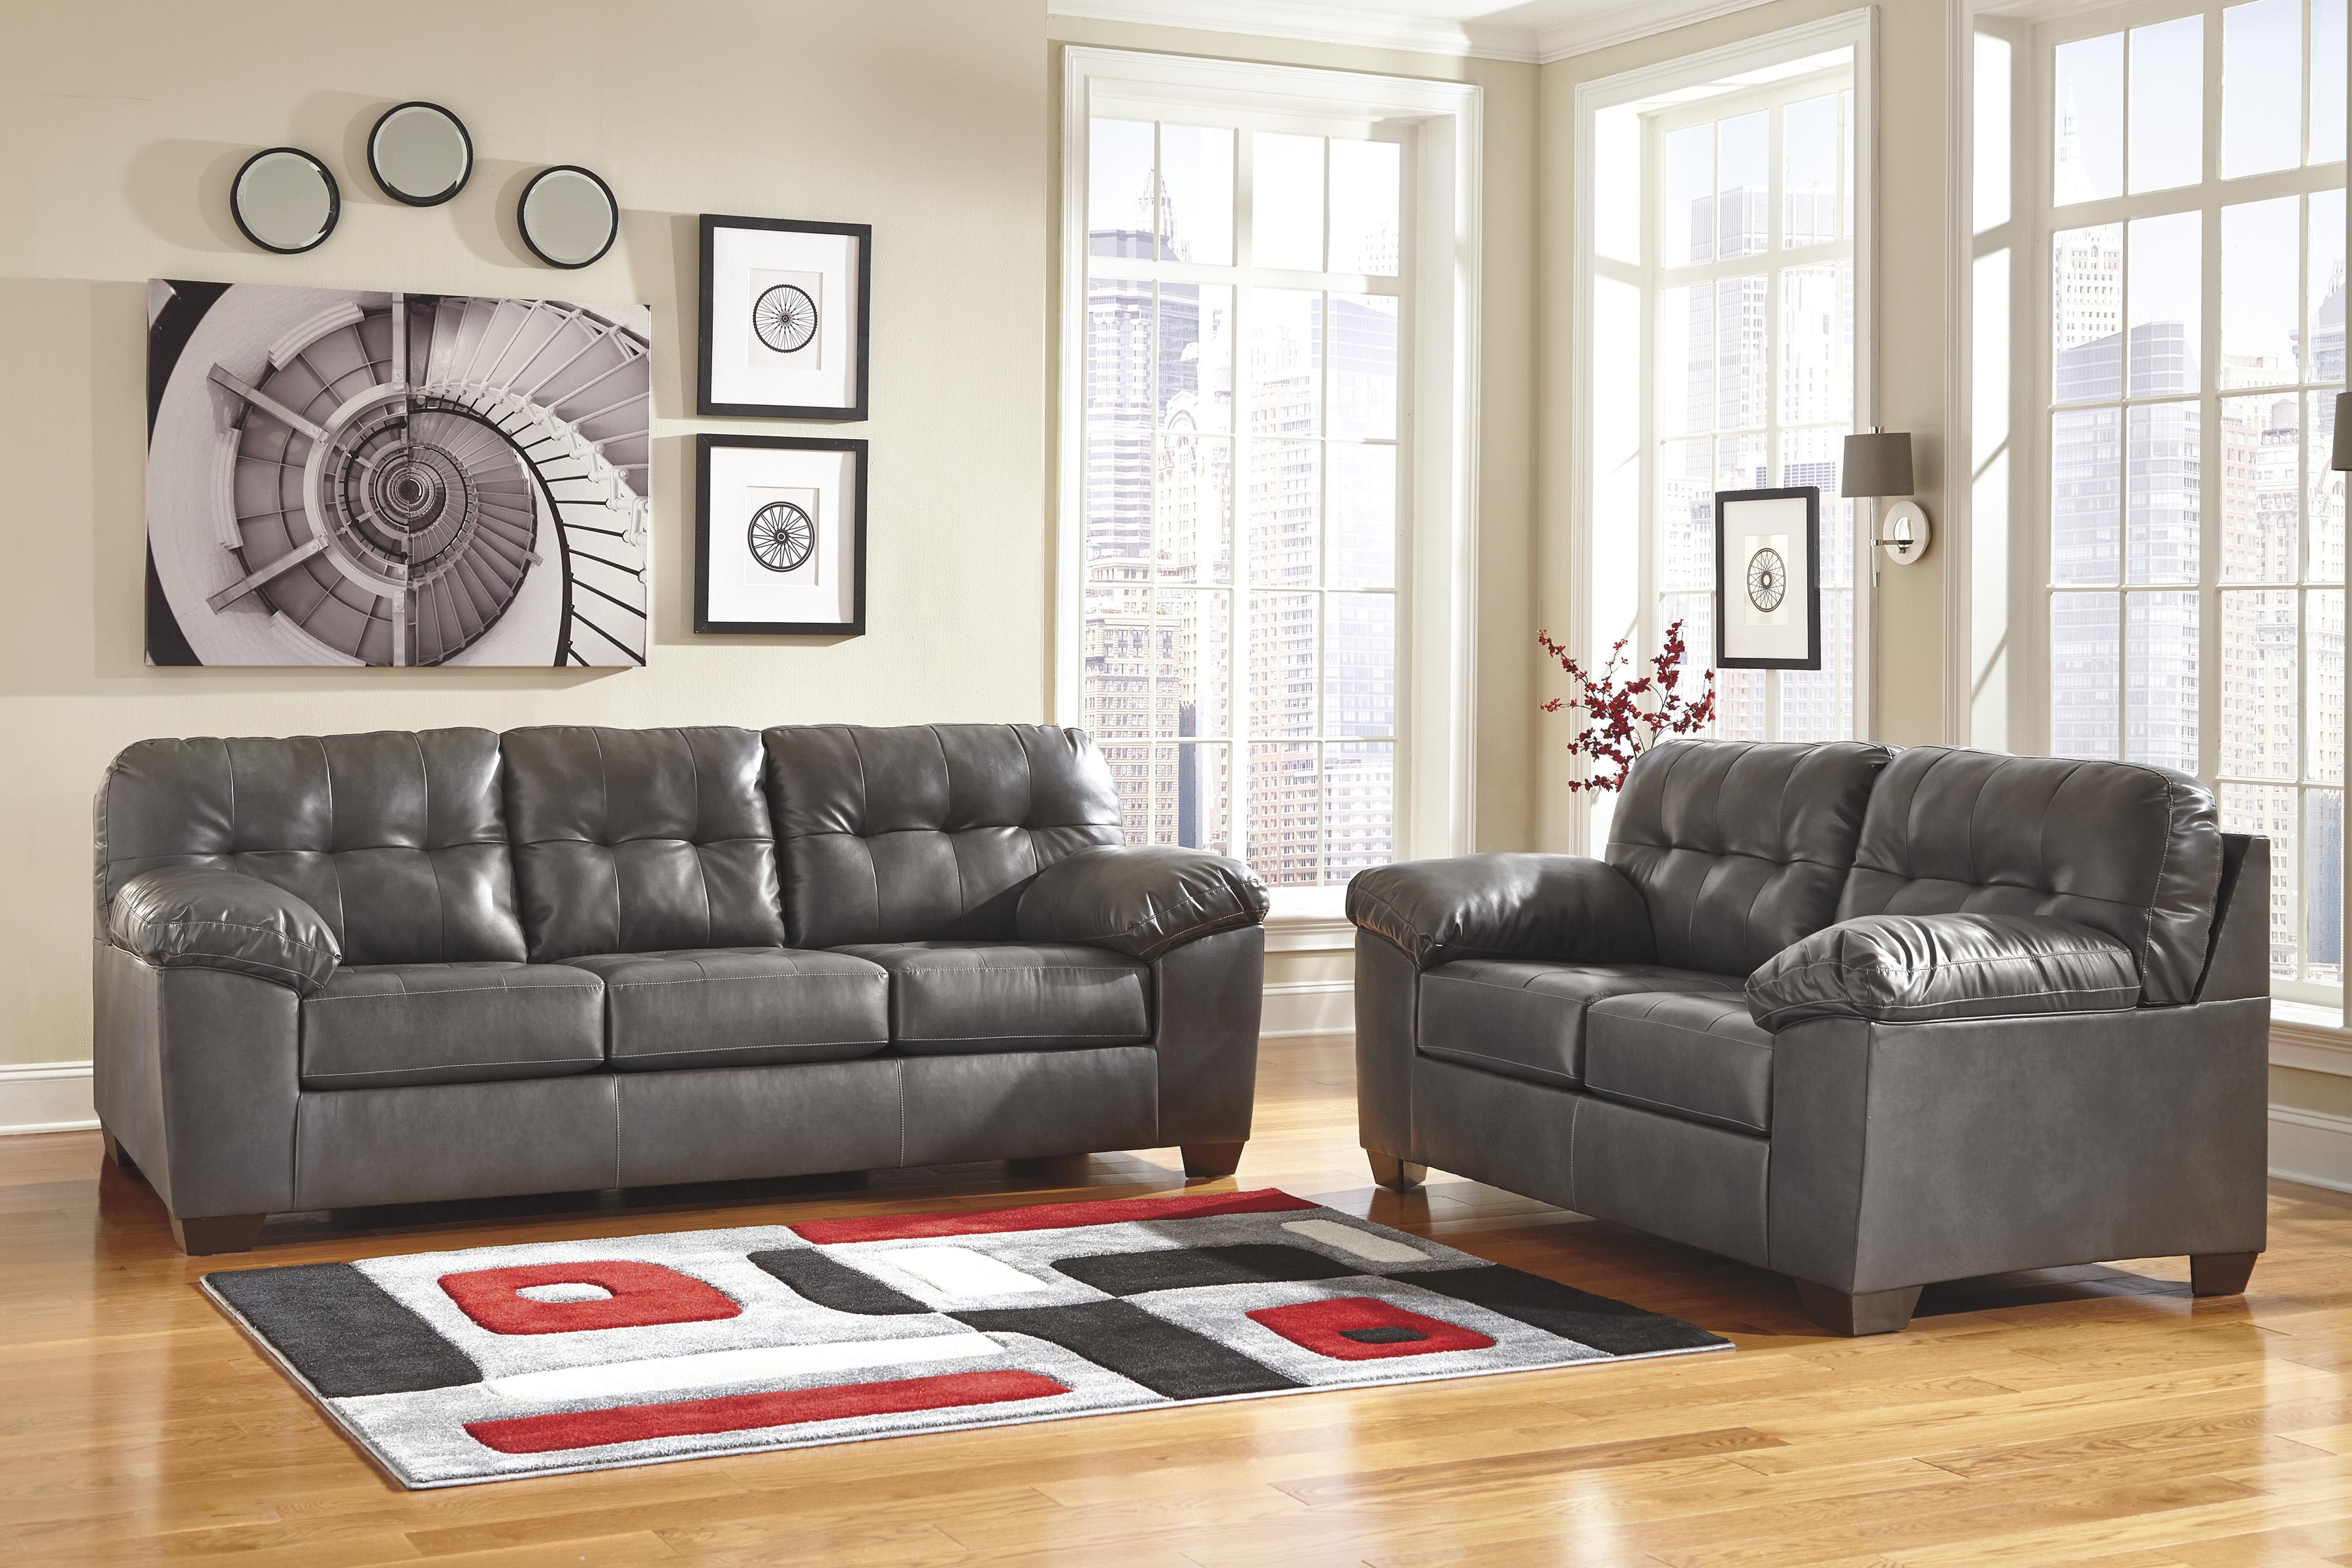 Signature Design By Ashley Alliston Durablend Gray Contemporary Loveseat W Pillow Arms Wayside Furniture Love Seat